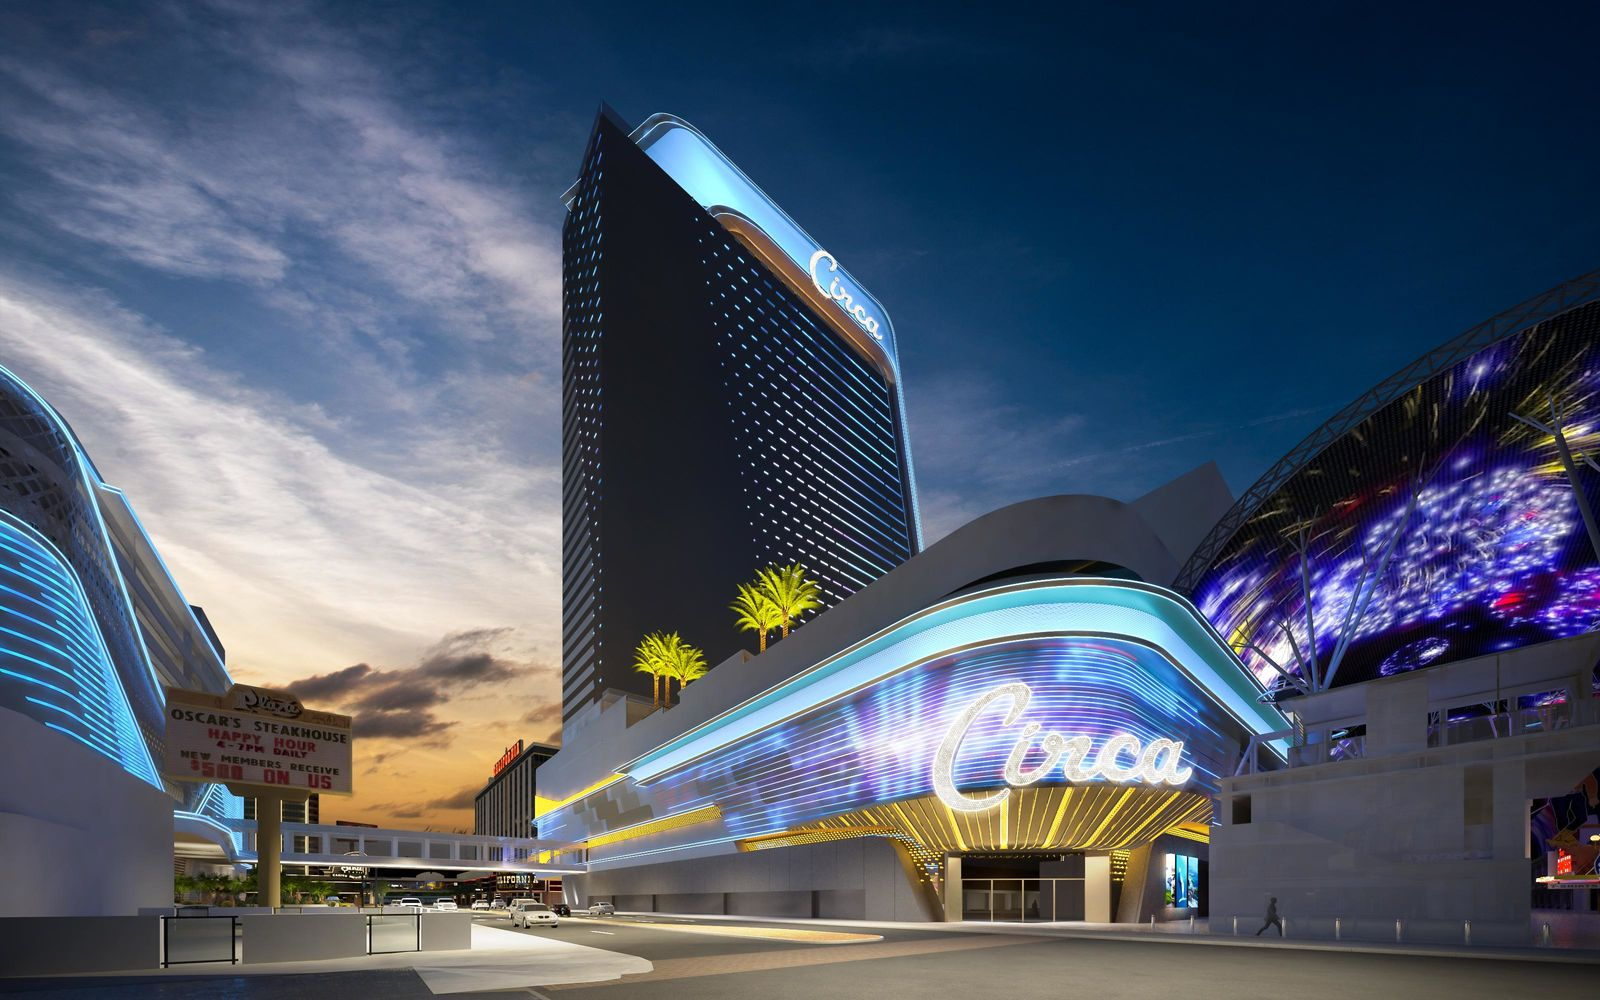 This is a rendering of Derek Stevens' new project for Fremont Street, Circa Resort & Casino, released Thursday, Jan 10, 2019 (Rendering courtesy of Circa)